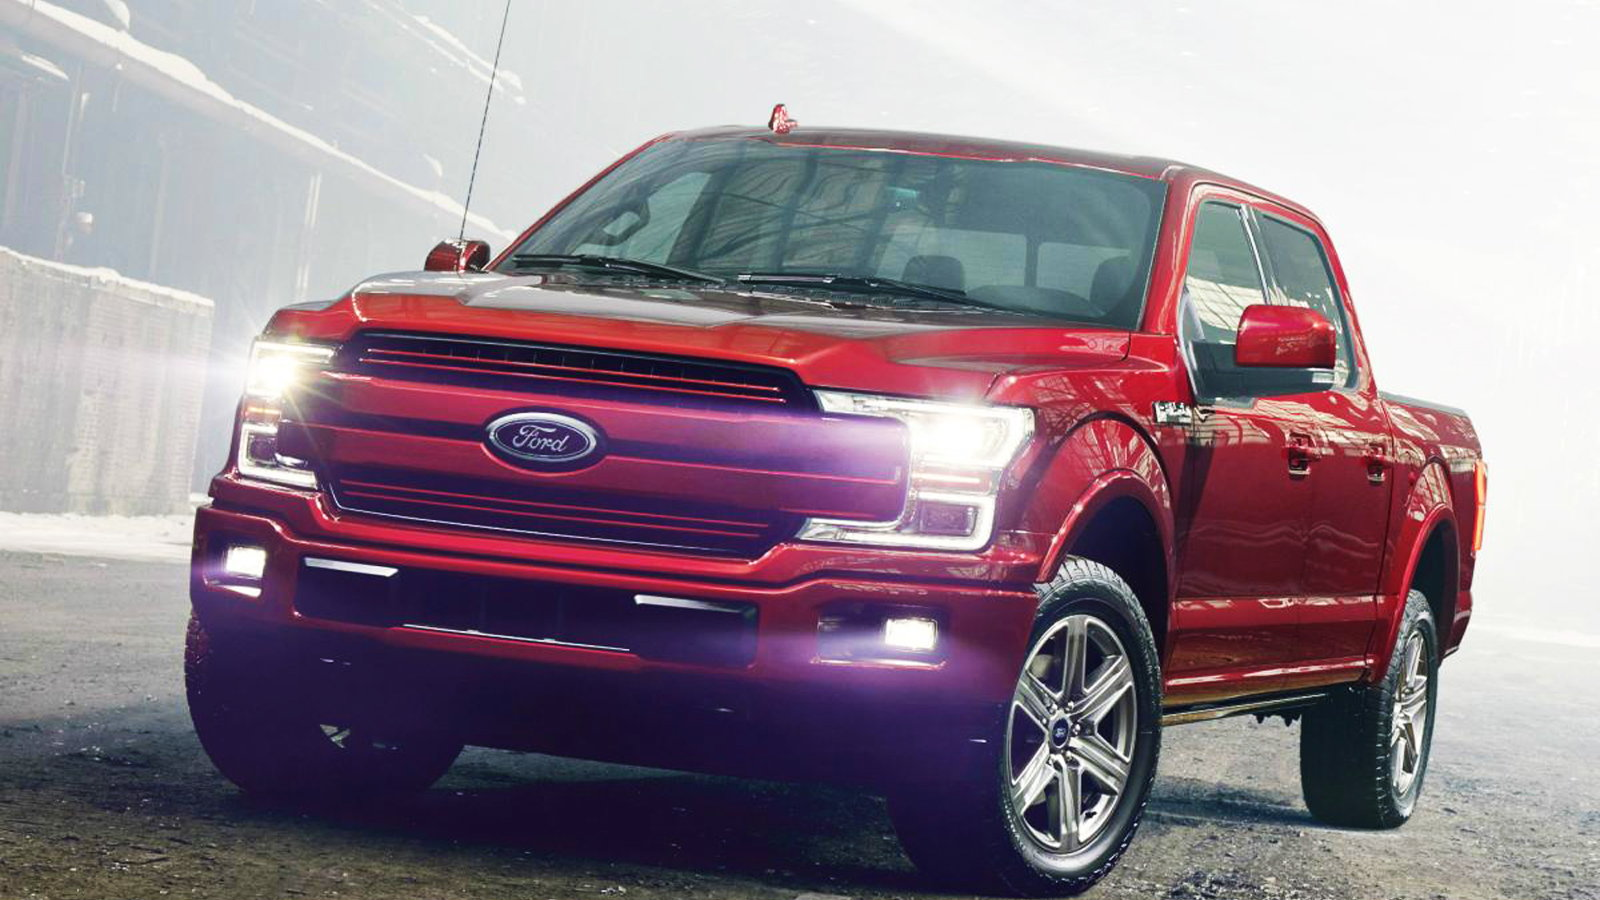 Ohio Dealership to Offer 725HP F-150s for Just $38,000